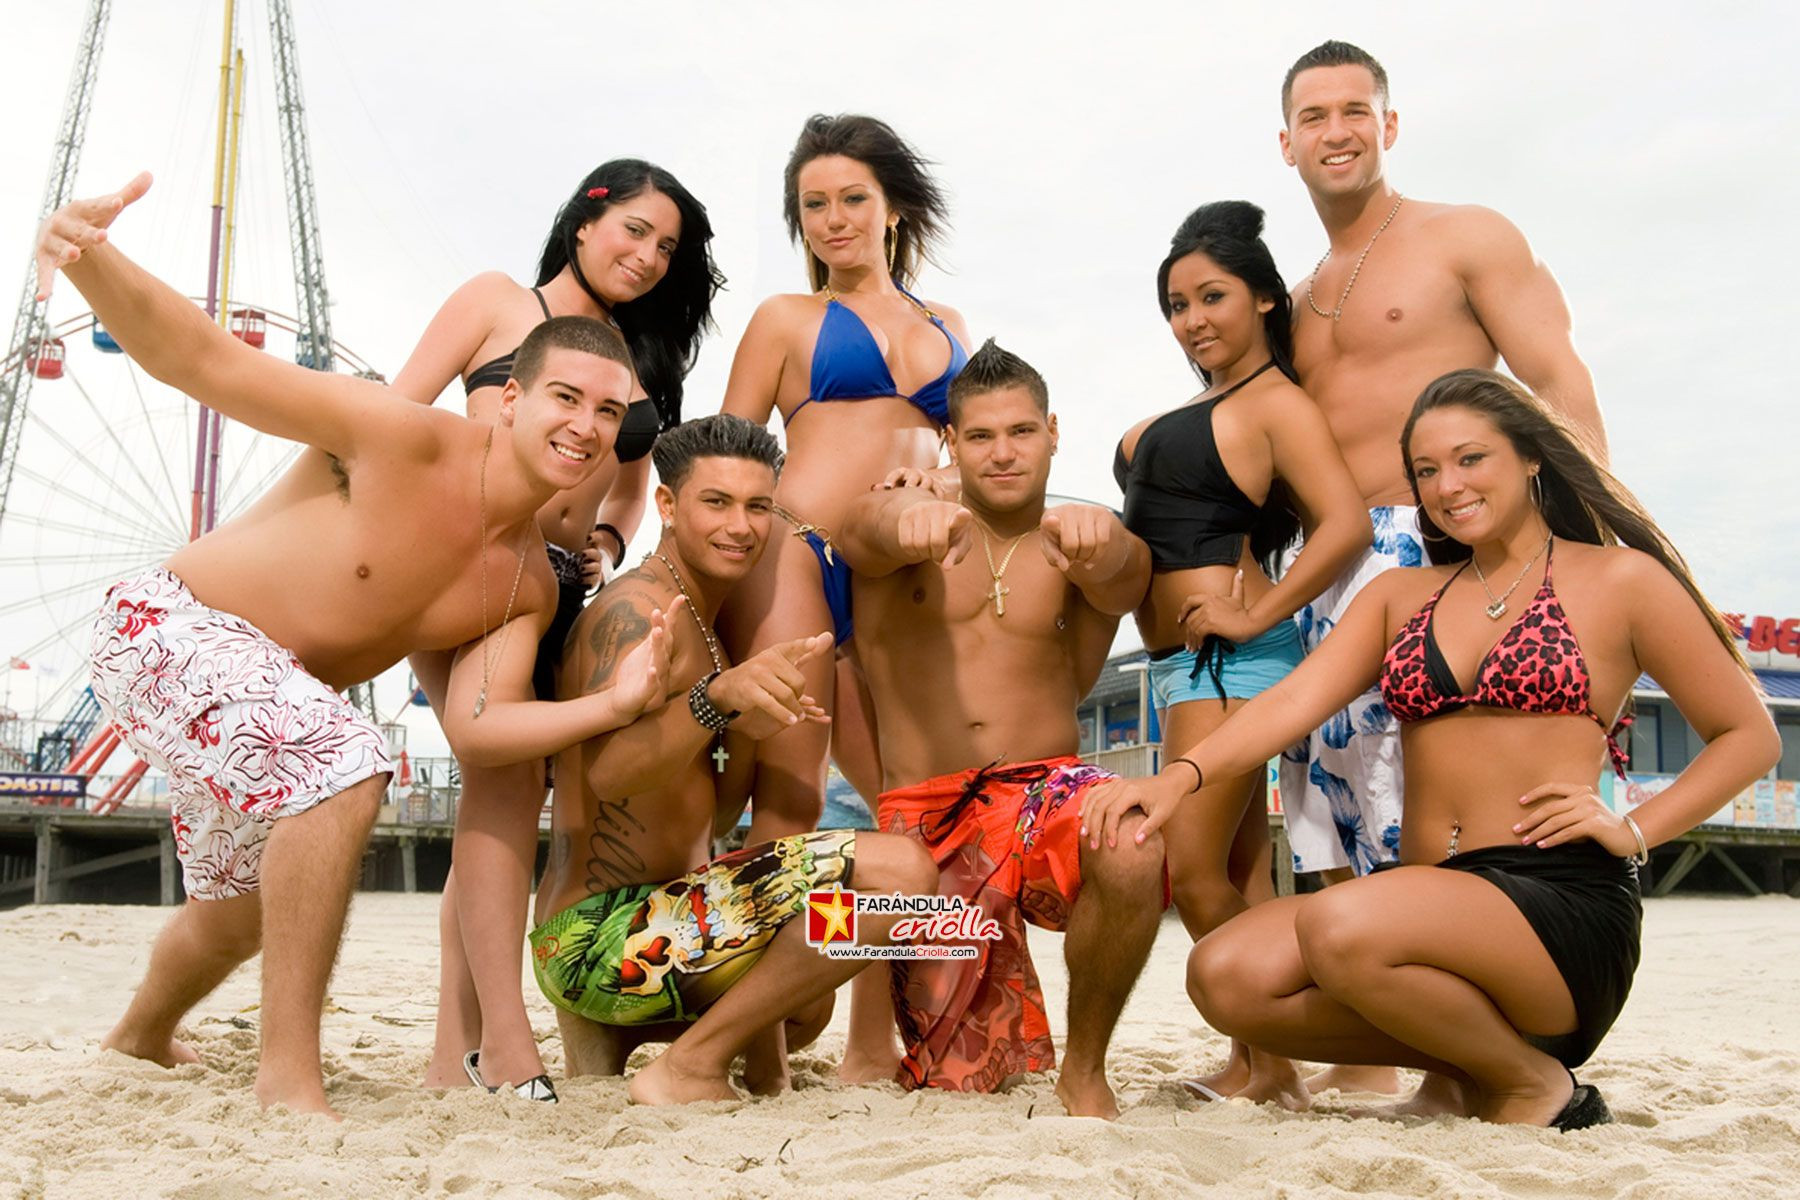 Remember These 15 Jersey Shore Hotties?